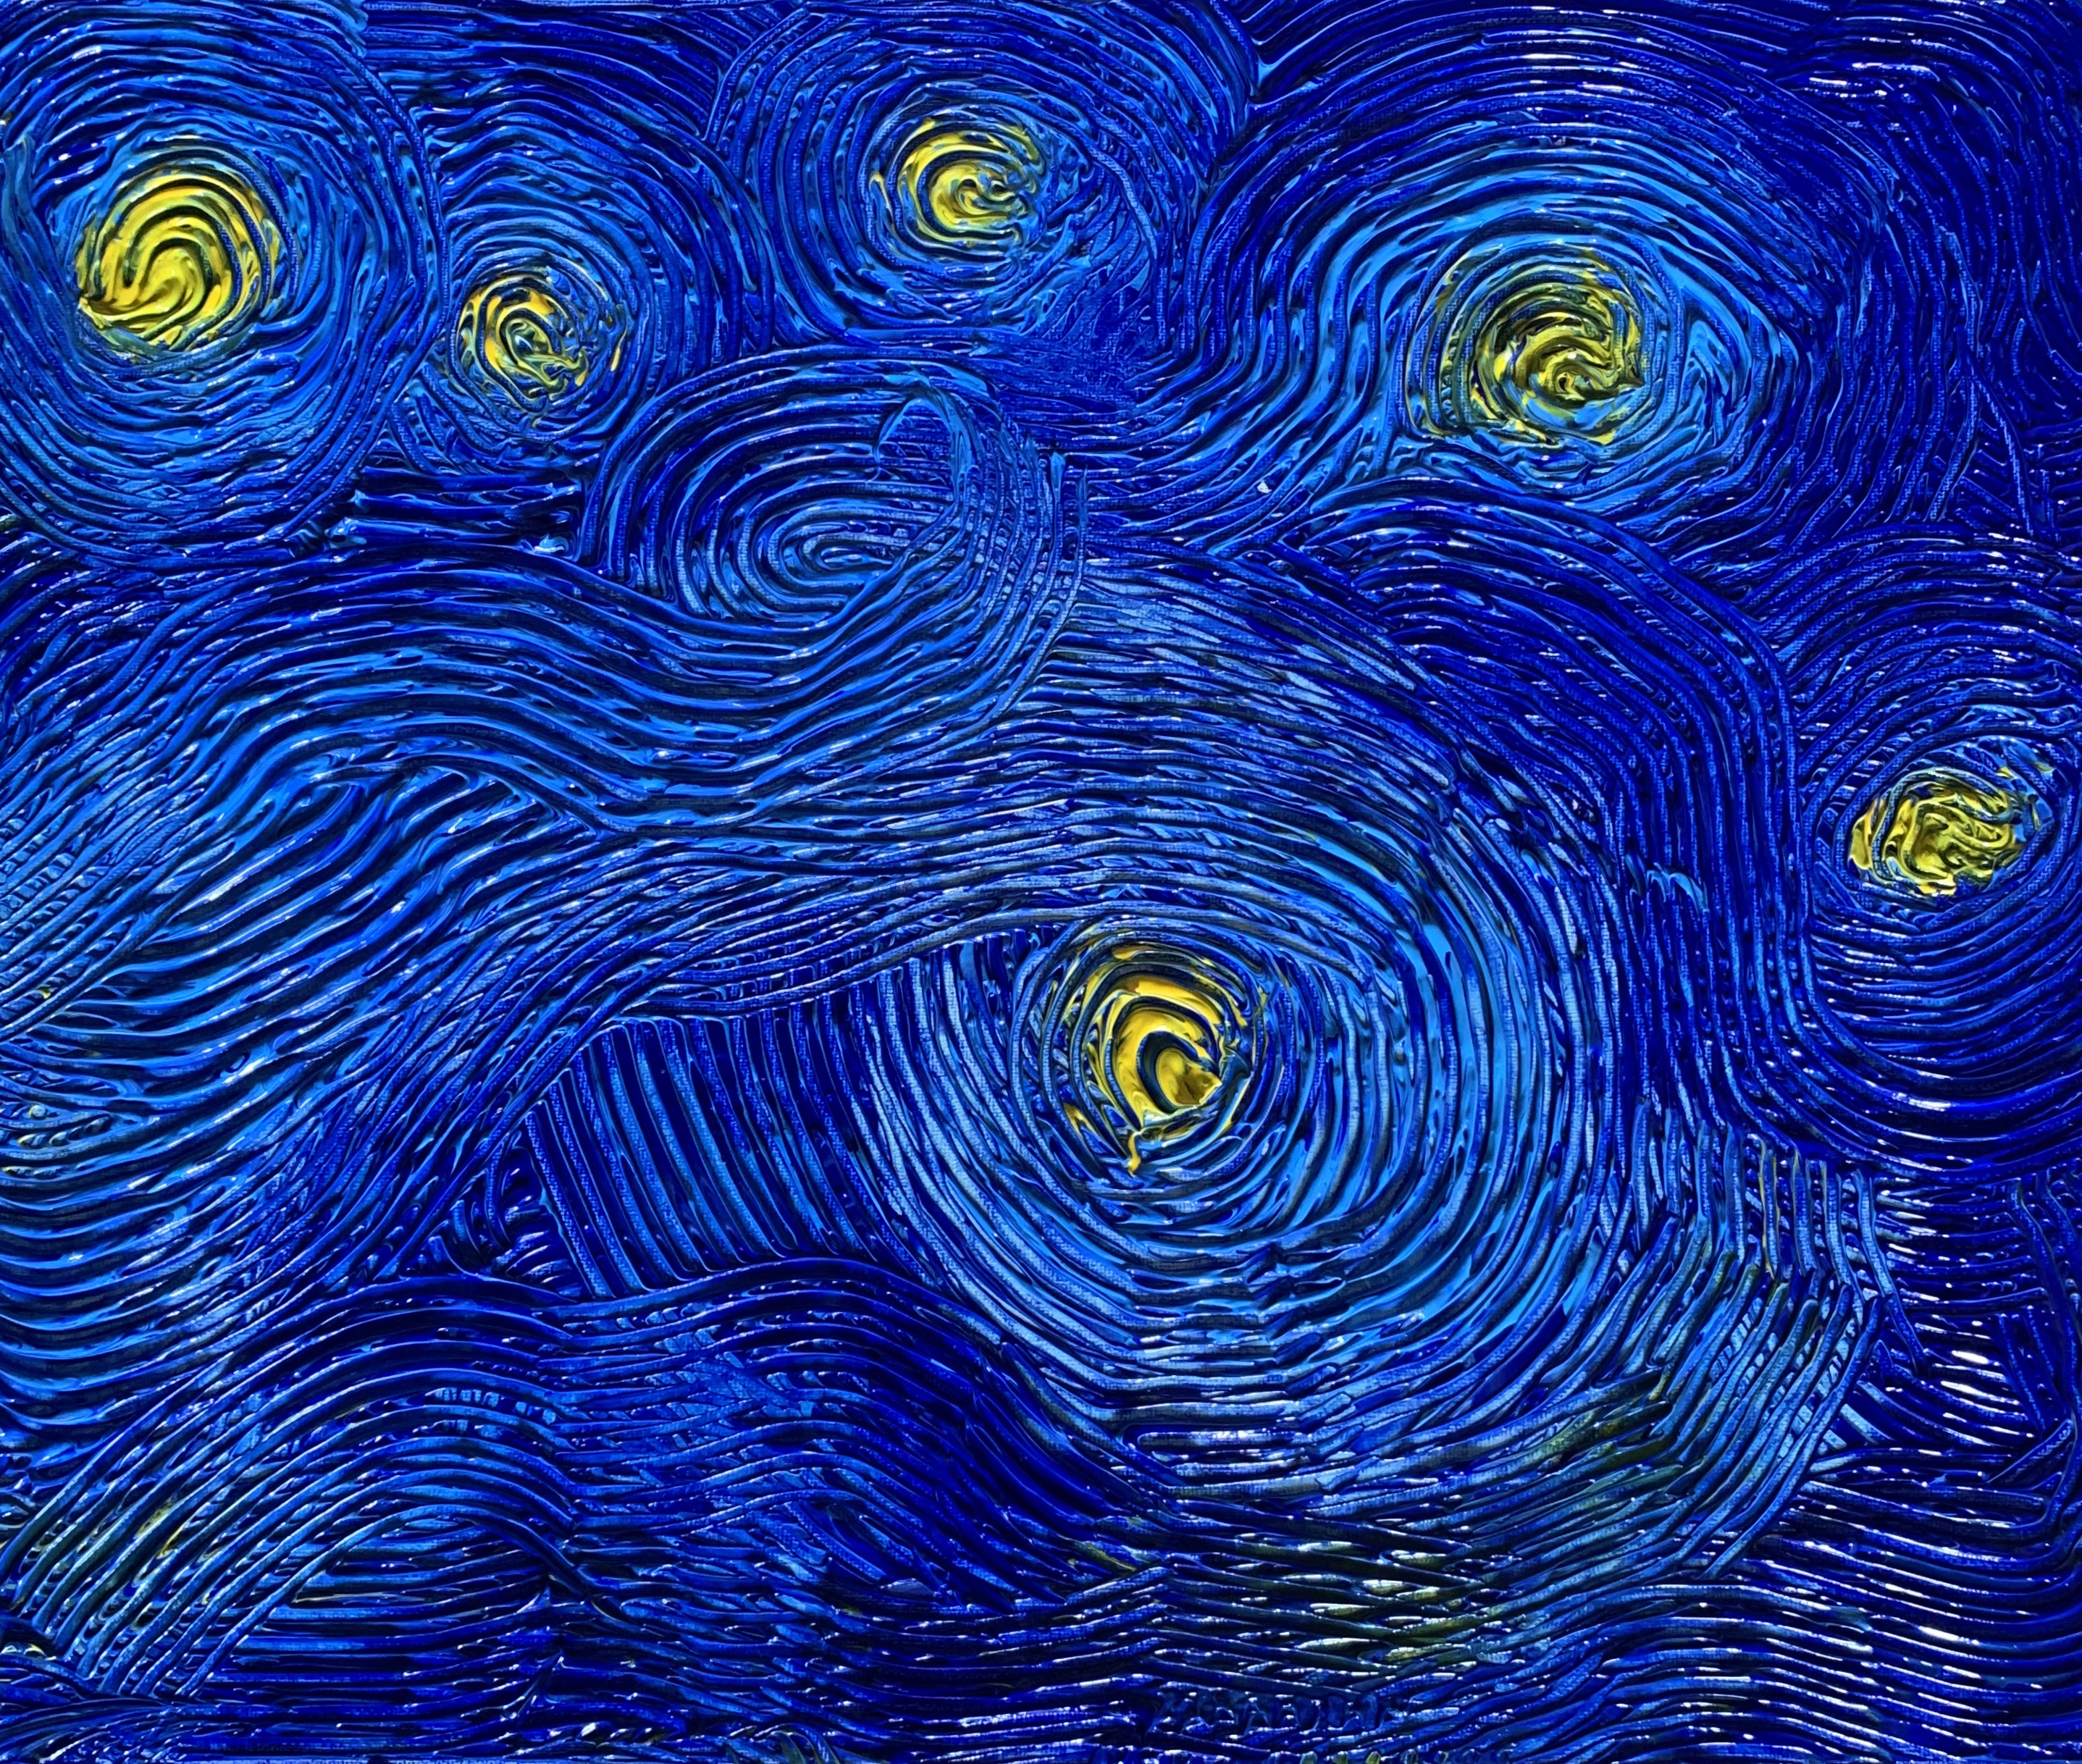 Revisiting Starry night